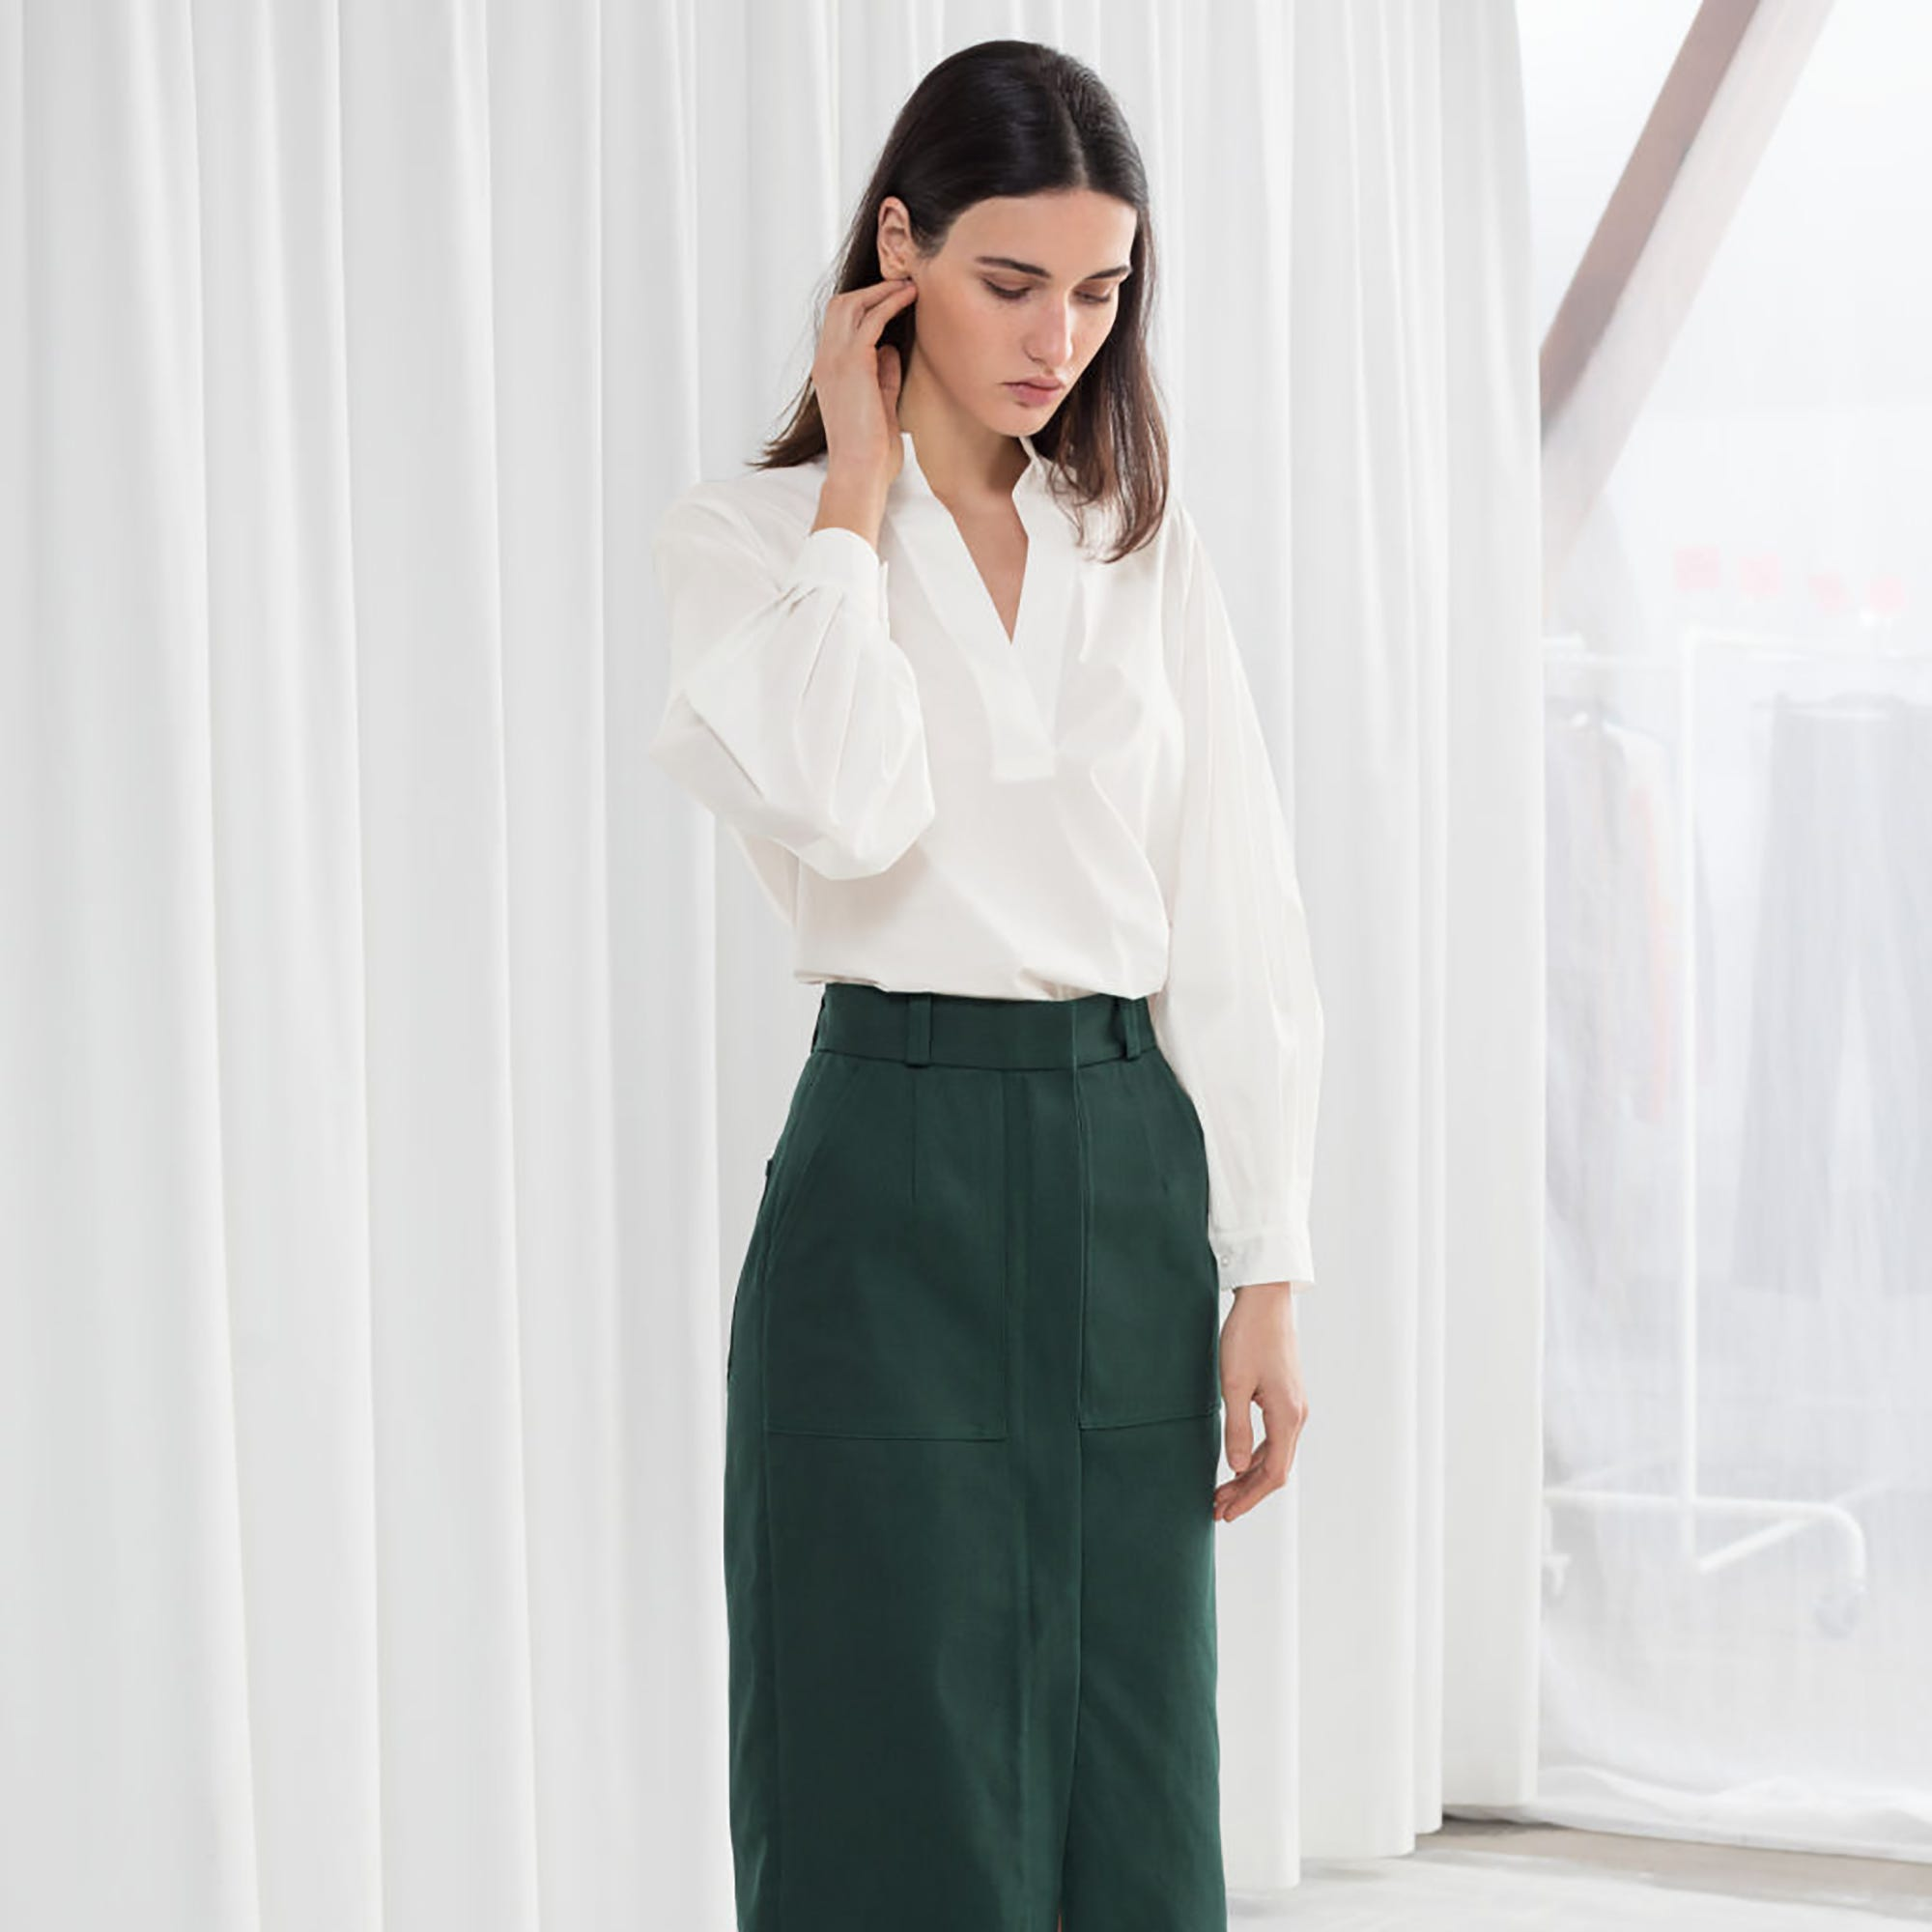 Business Casual For Women, Cute